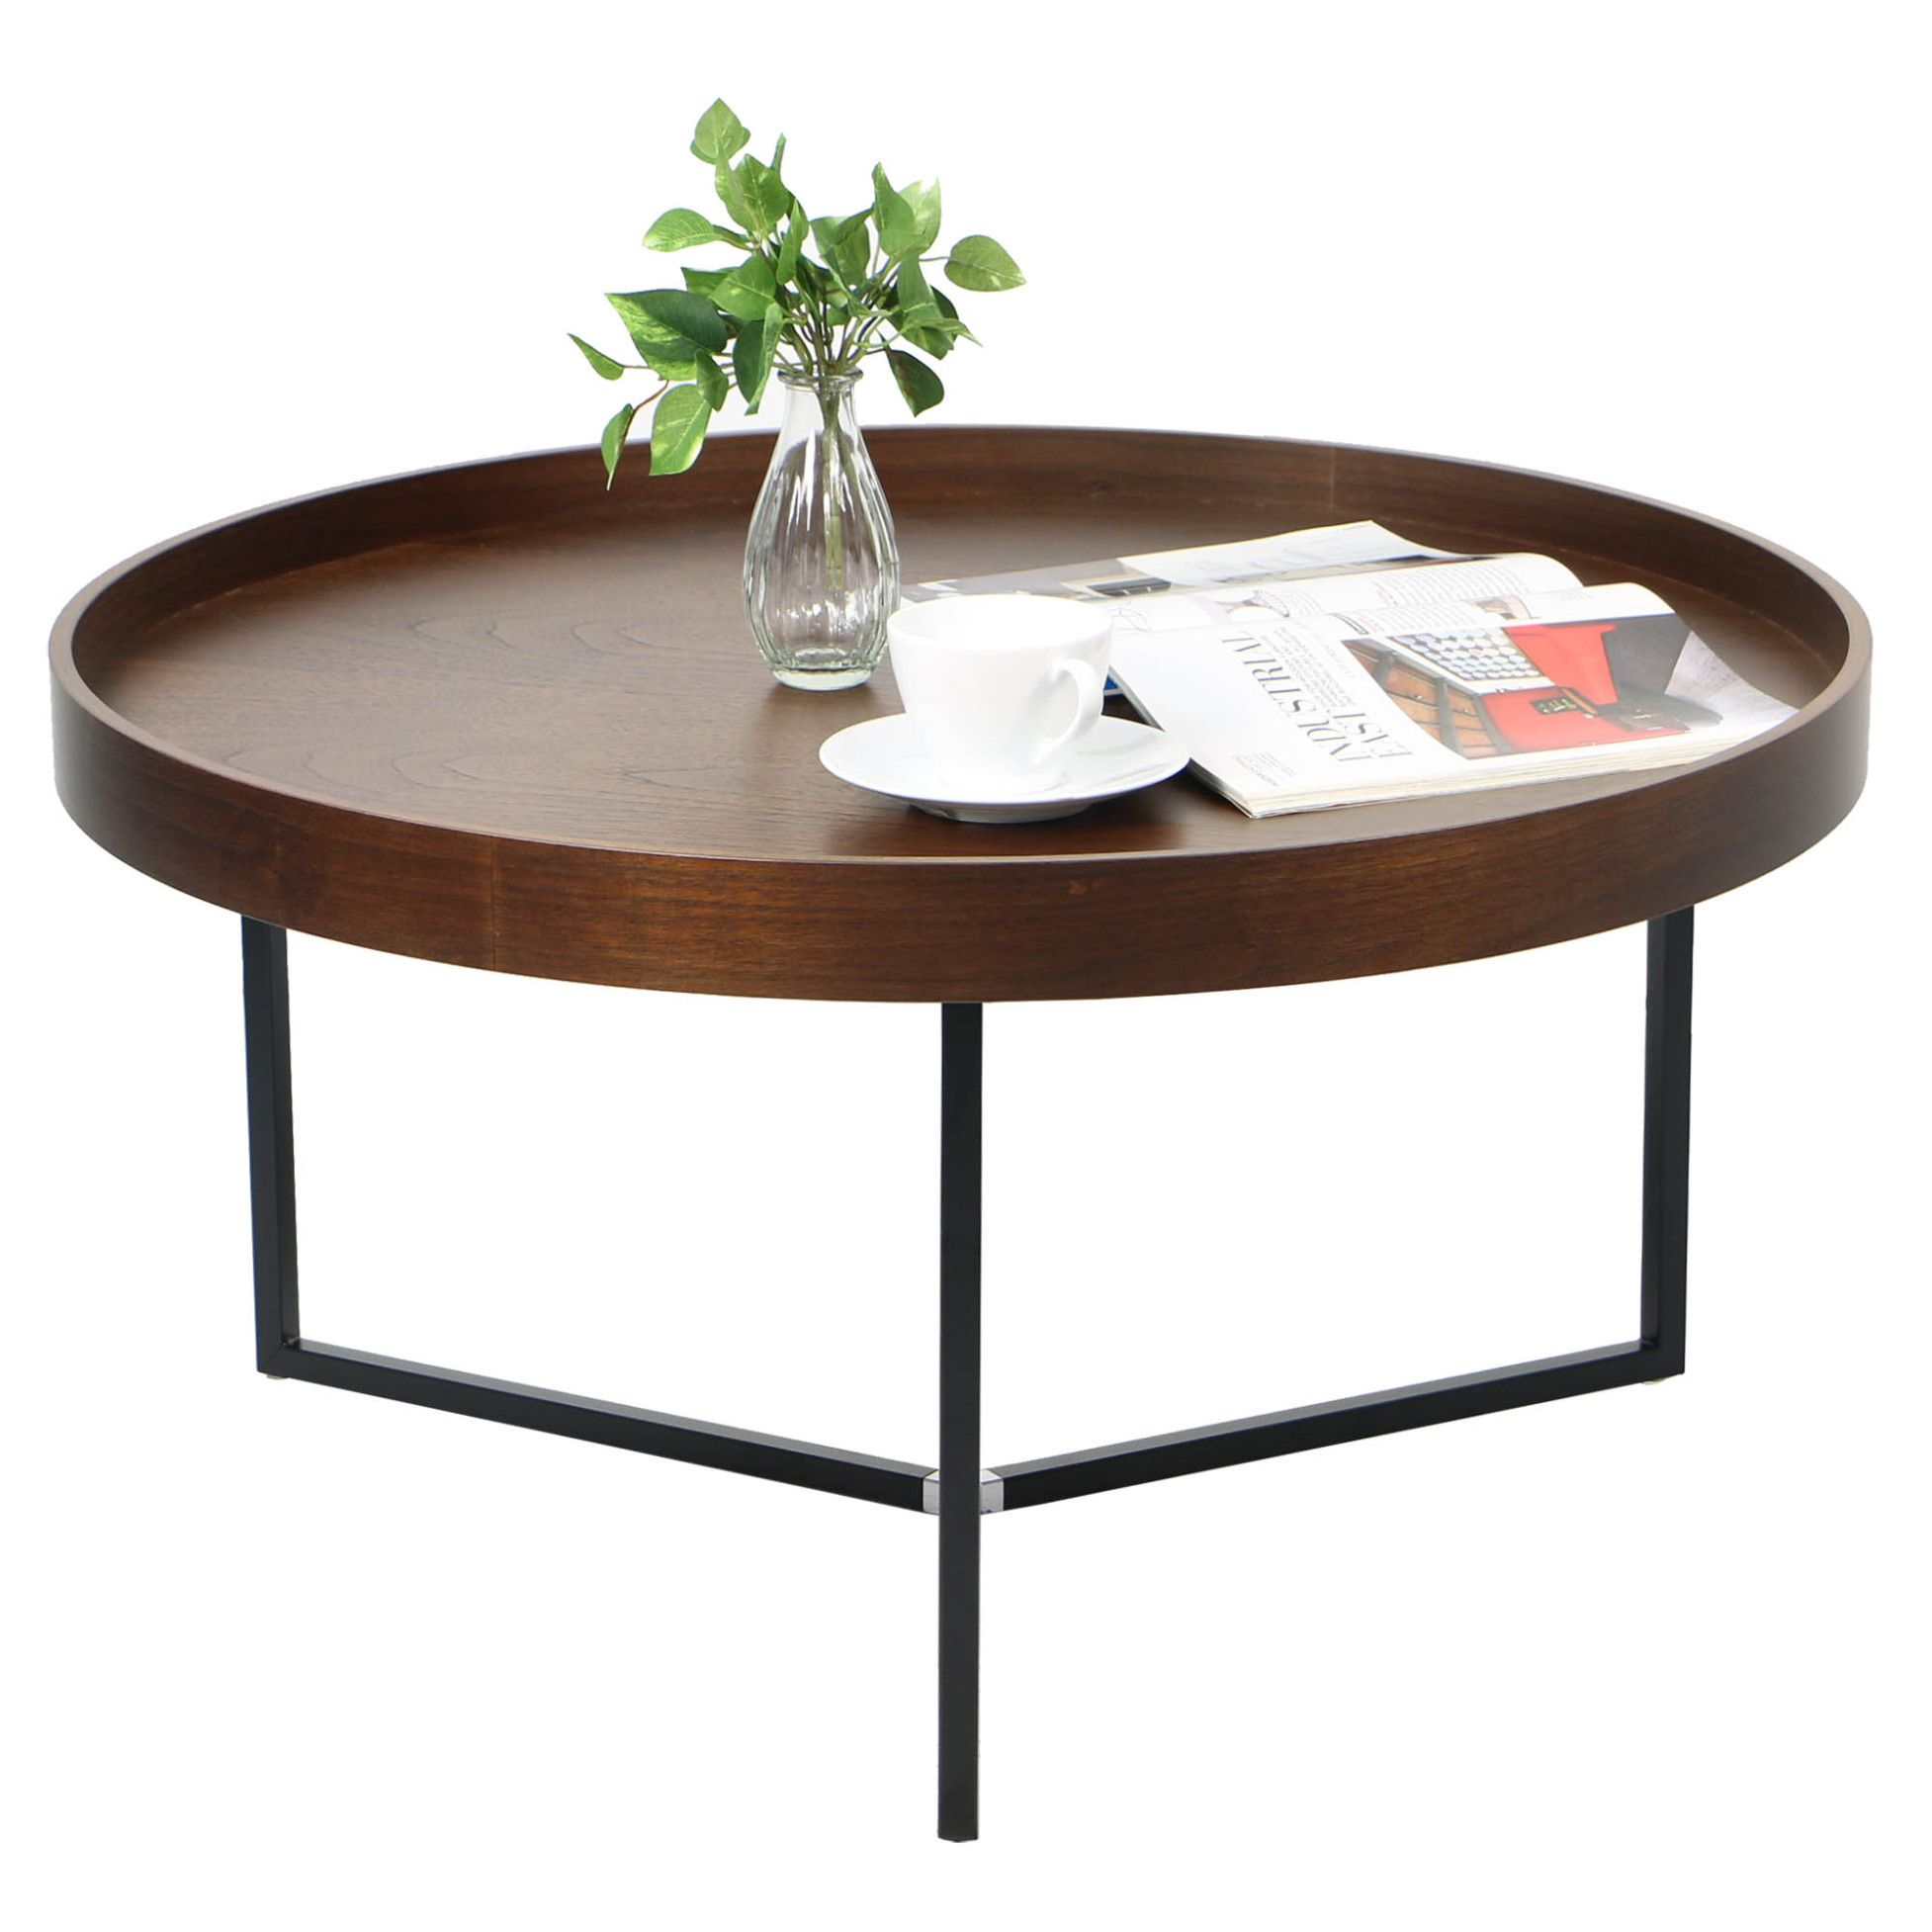 Buy Barrie Walnut Round Tray Table Online On FortyTwo From Just 14900 Now Shop With